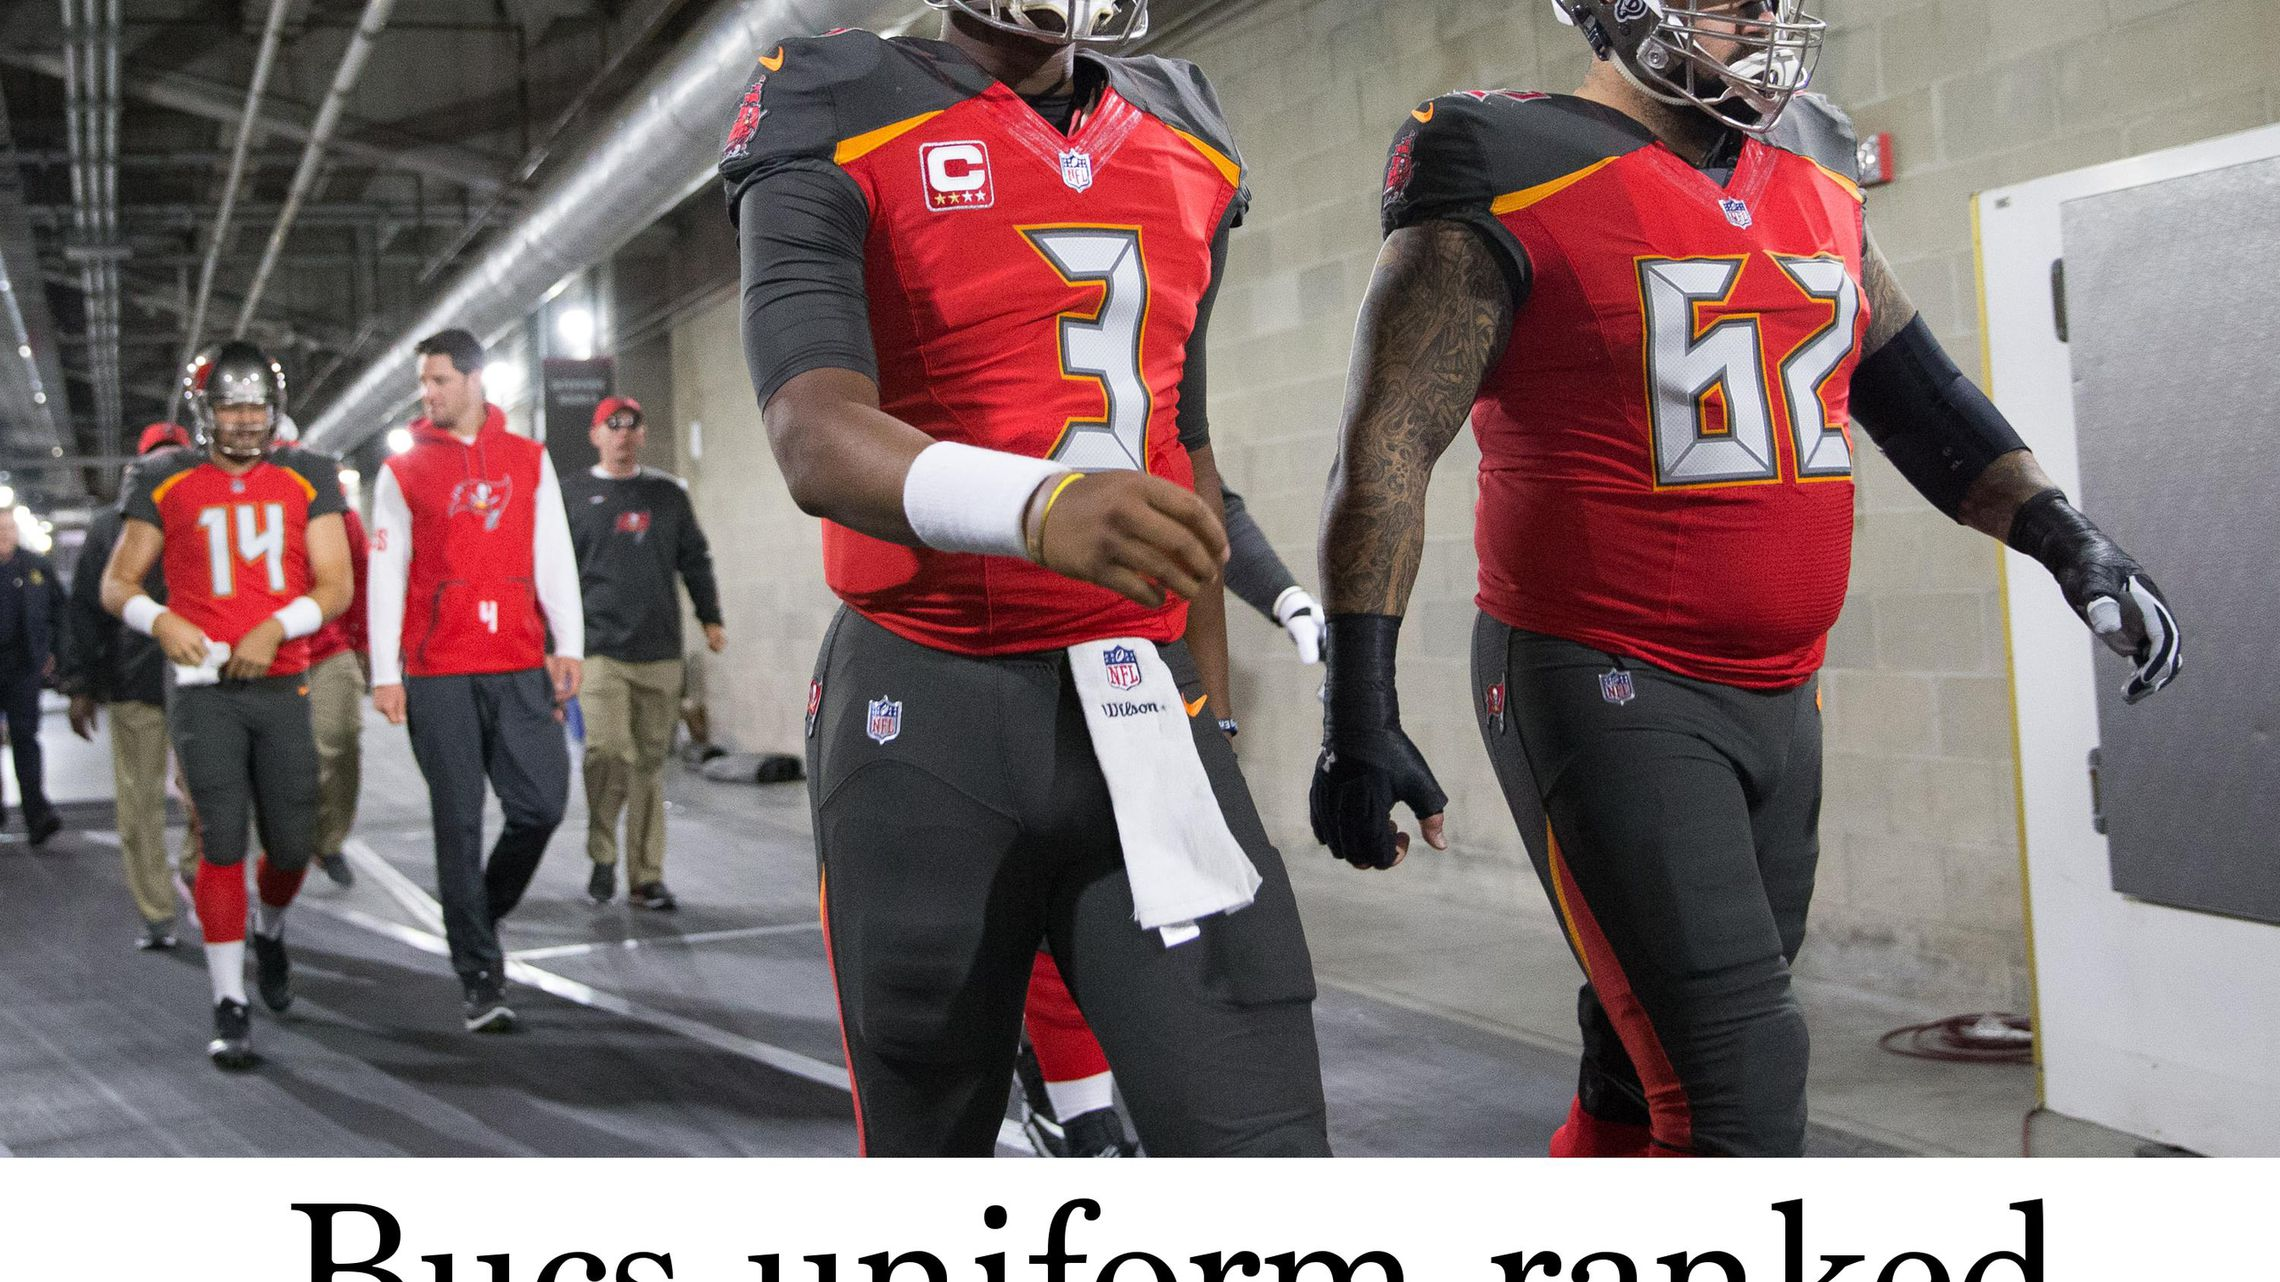 Bucs Uniform Ranked 32nd Among Nfl Teams Because There Isn T A 33rd